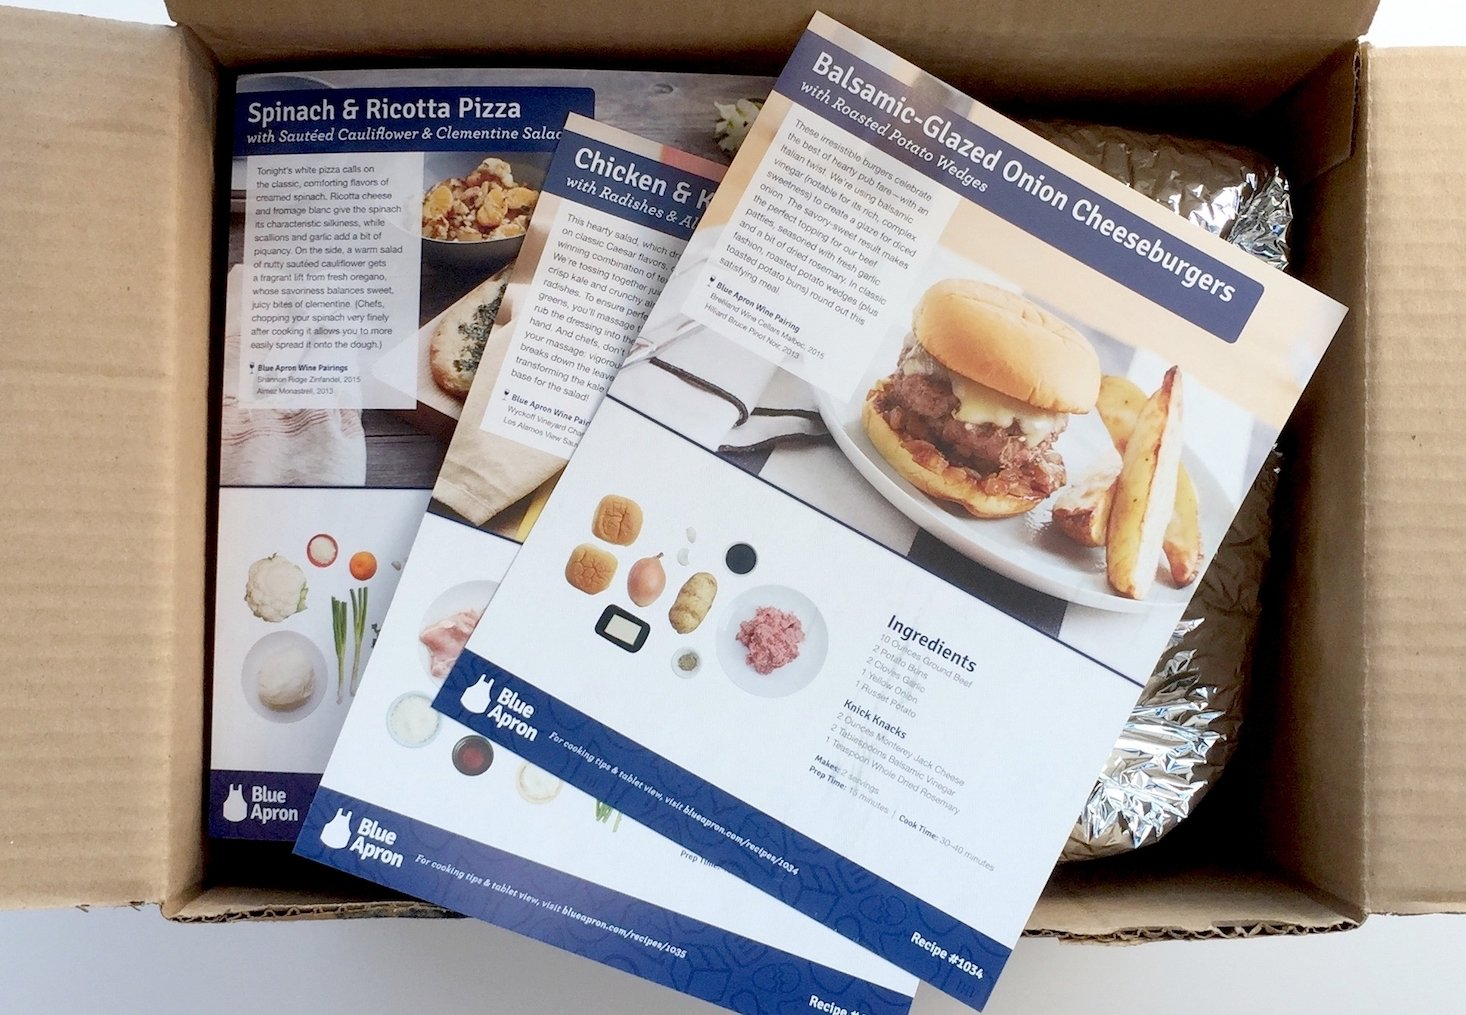 White apron dover nh